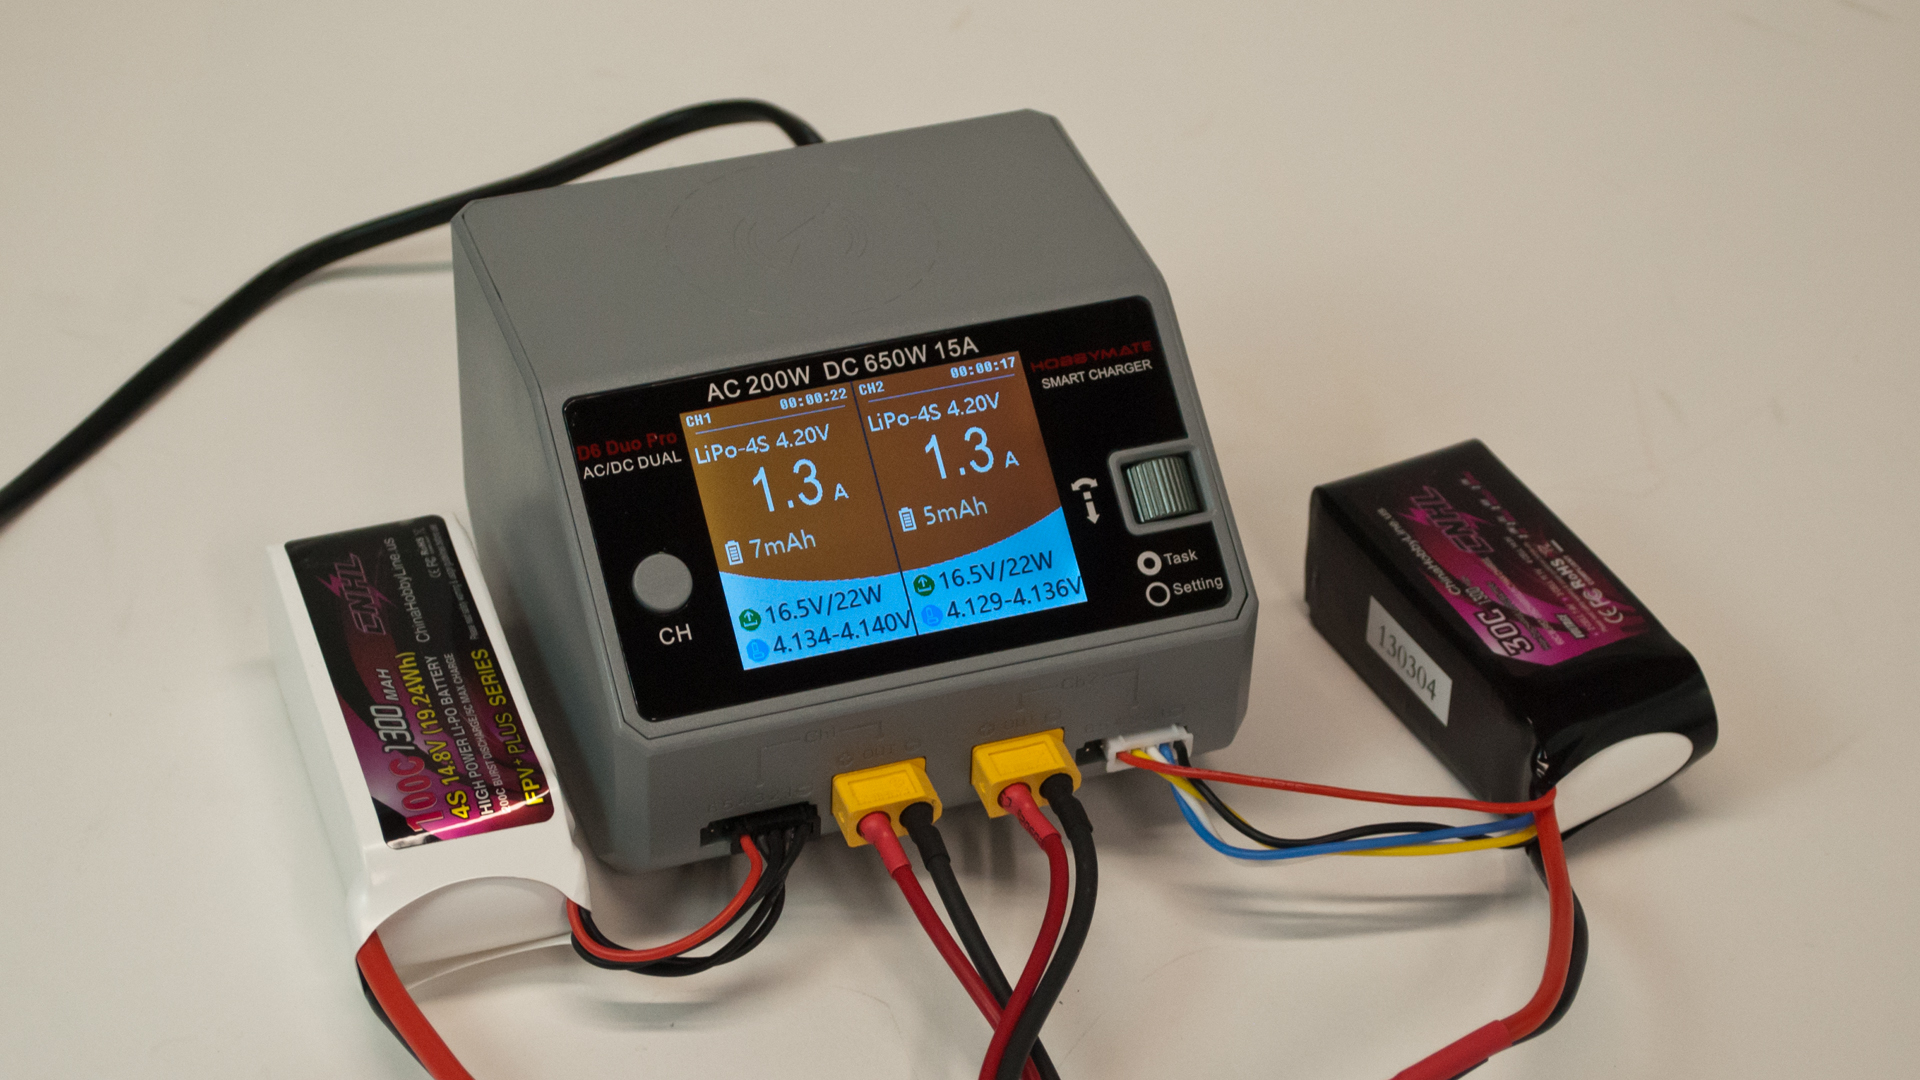 HAnalyzing LiPo Battery Discharge Rates - Tested